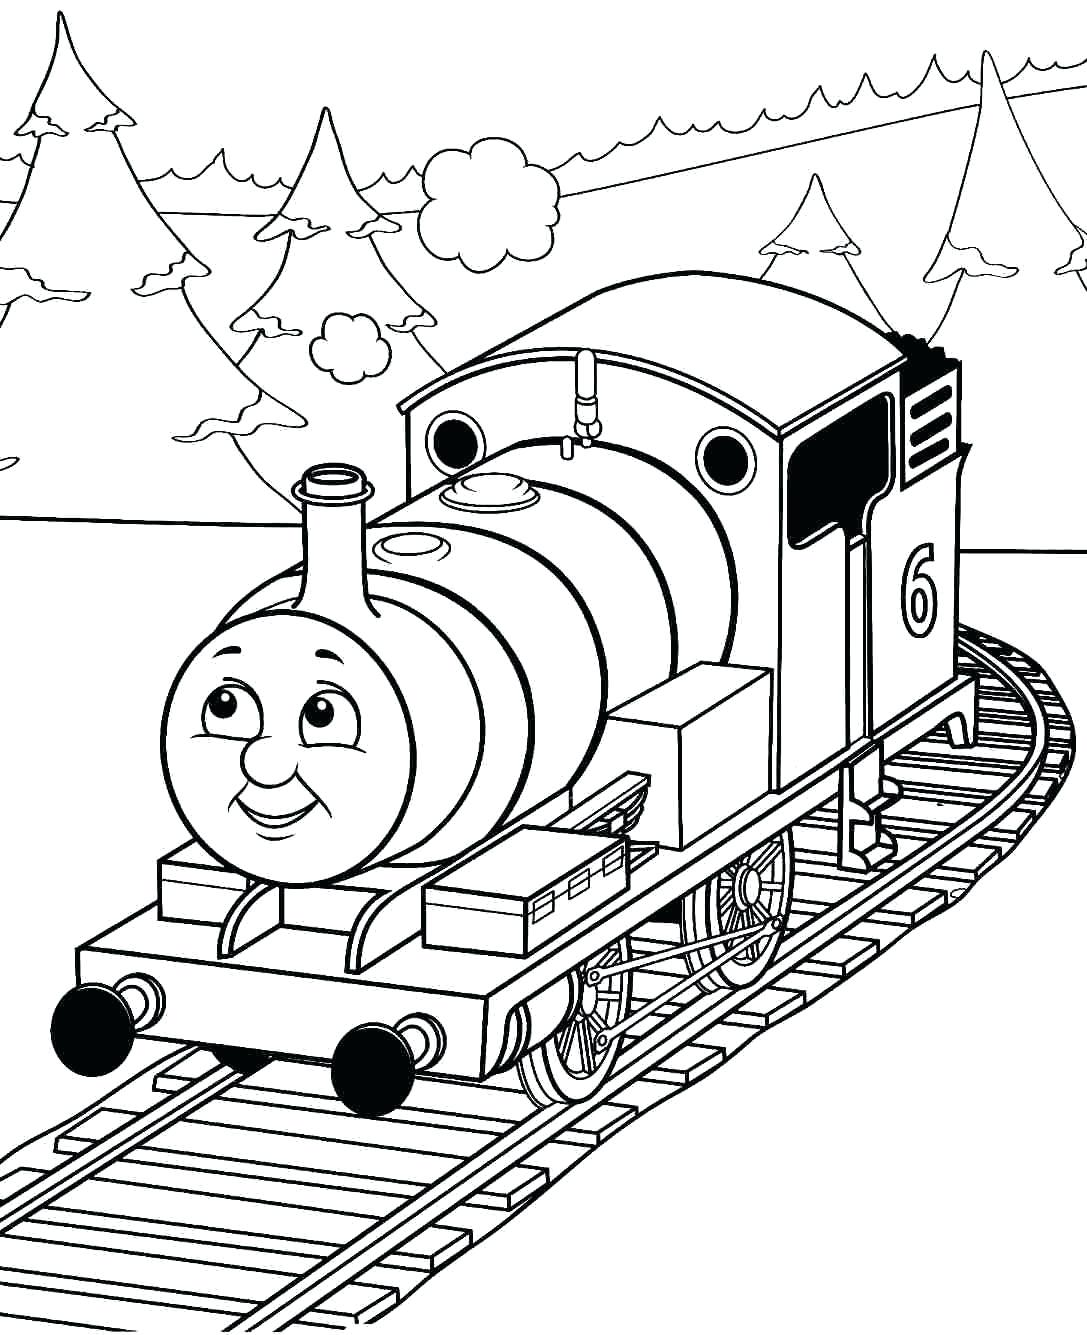 1087x1335 Coloring Choo Choo Train Coloring Pages